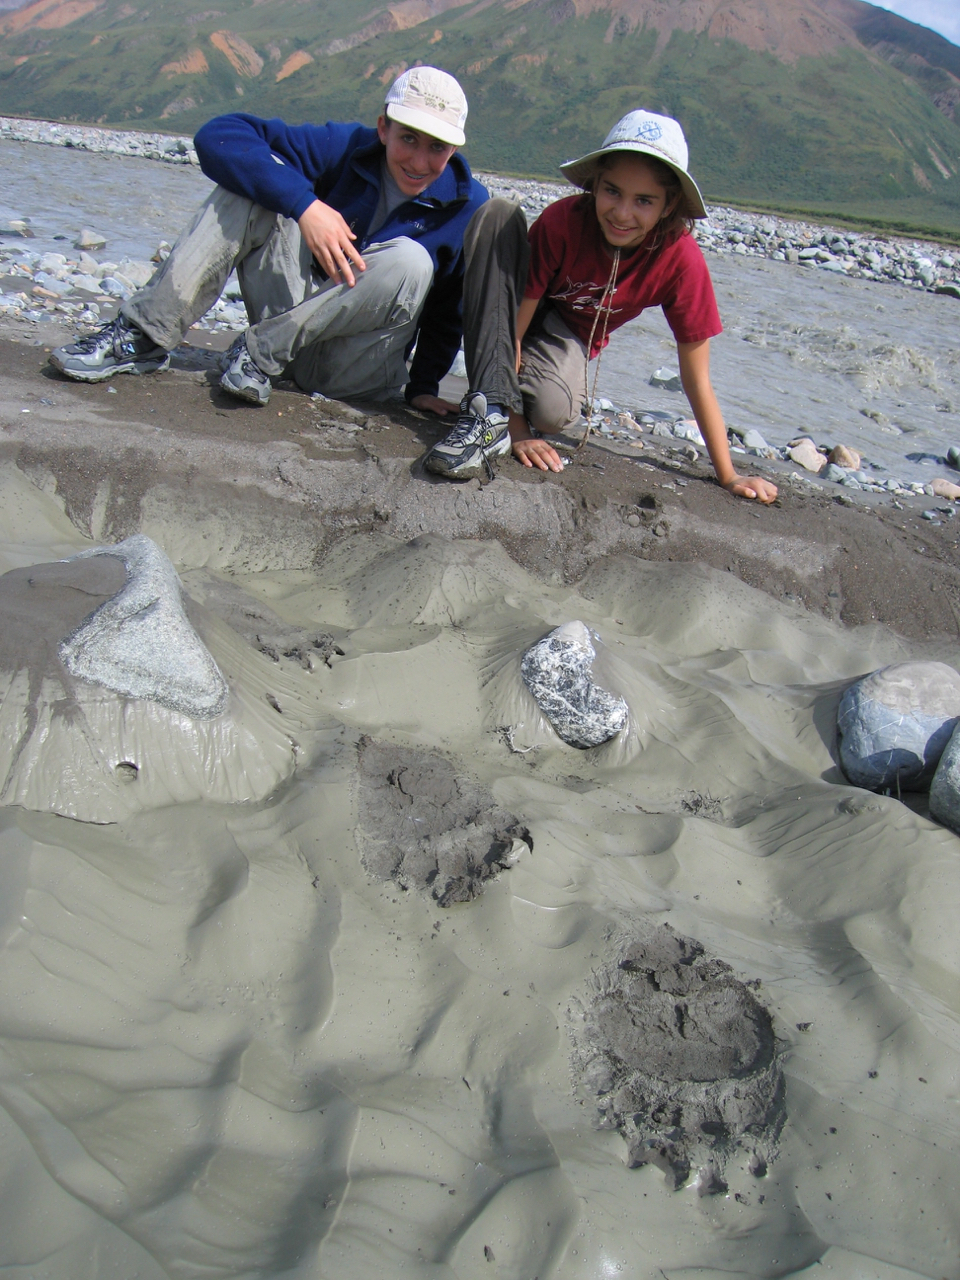 Megan and Amy pose by Grizzly Bear tracks along the Toklat River, Denali National Park. We saw three separate Grizzlies that morning along the river - including the giant one that left these prints before heading onto a slope to munch on blueberries.